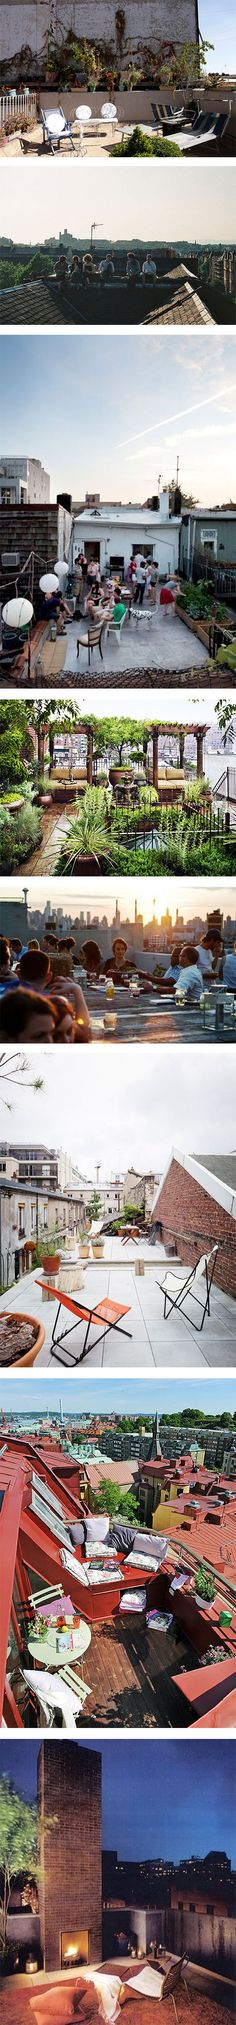 8 rooftops you should be chilling on right now via Nuji.com